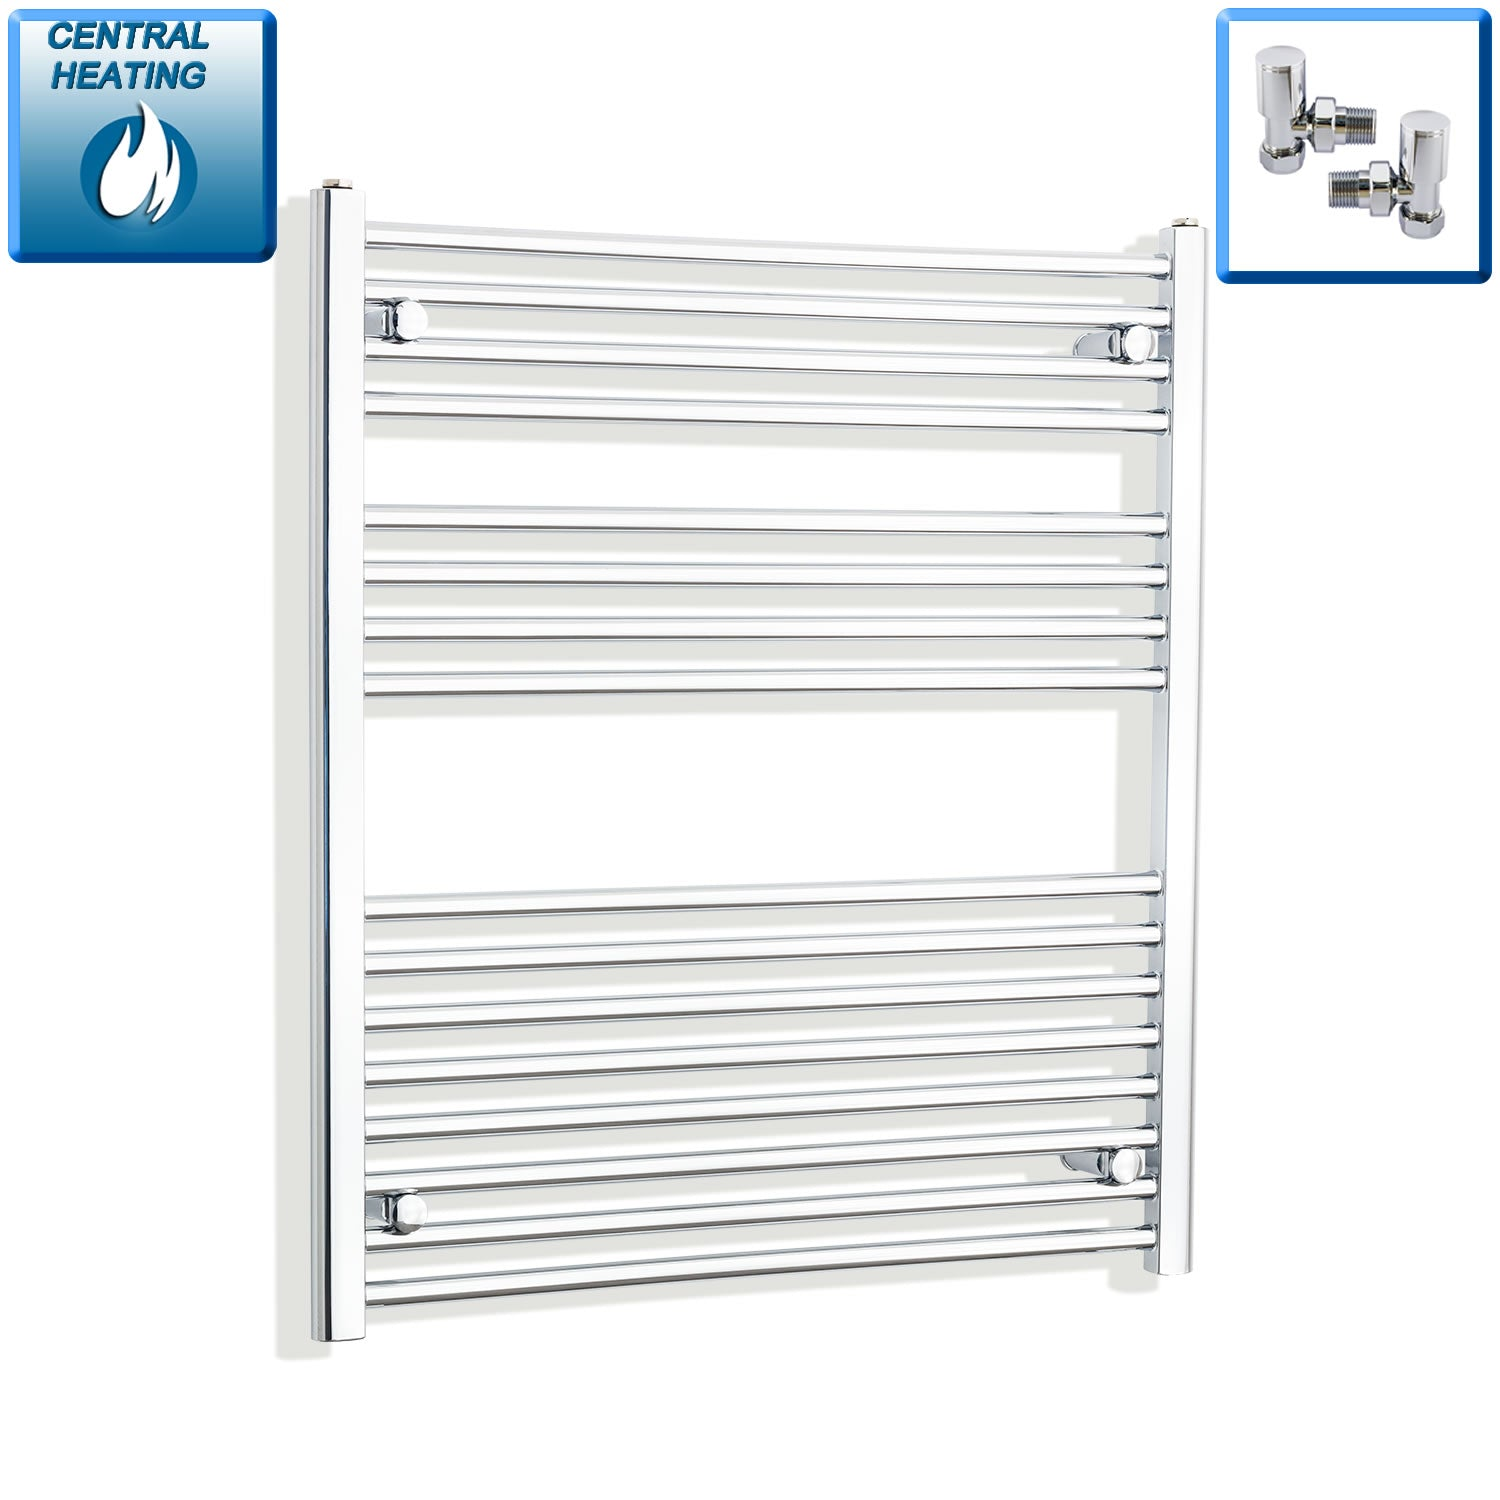 900mm Wide 900mm High Chrome Towel Rail Radiator With Angled Valve